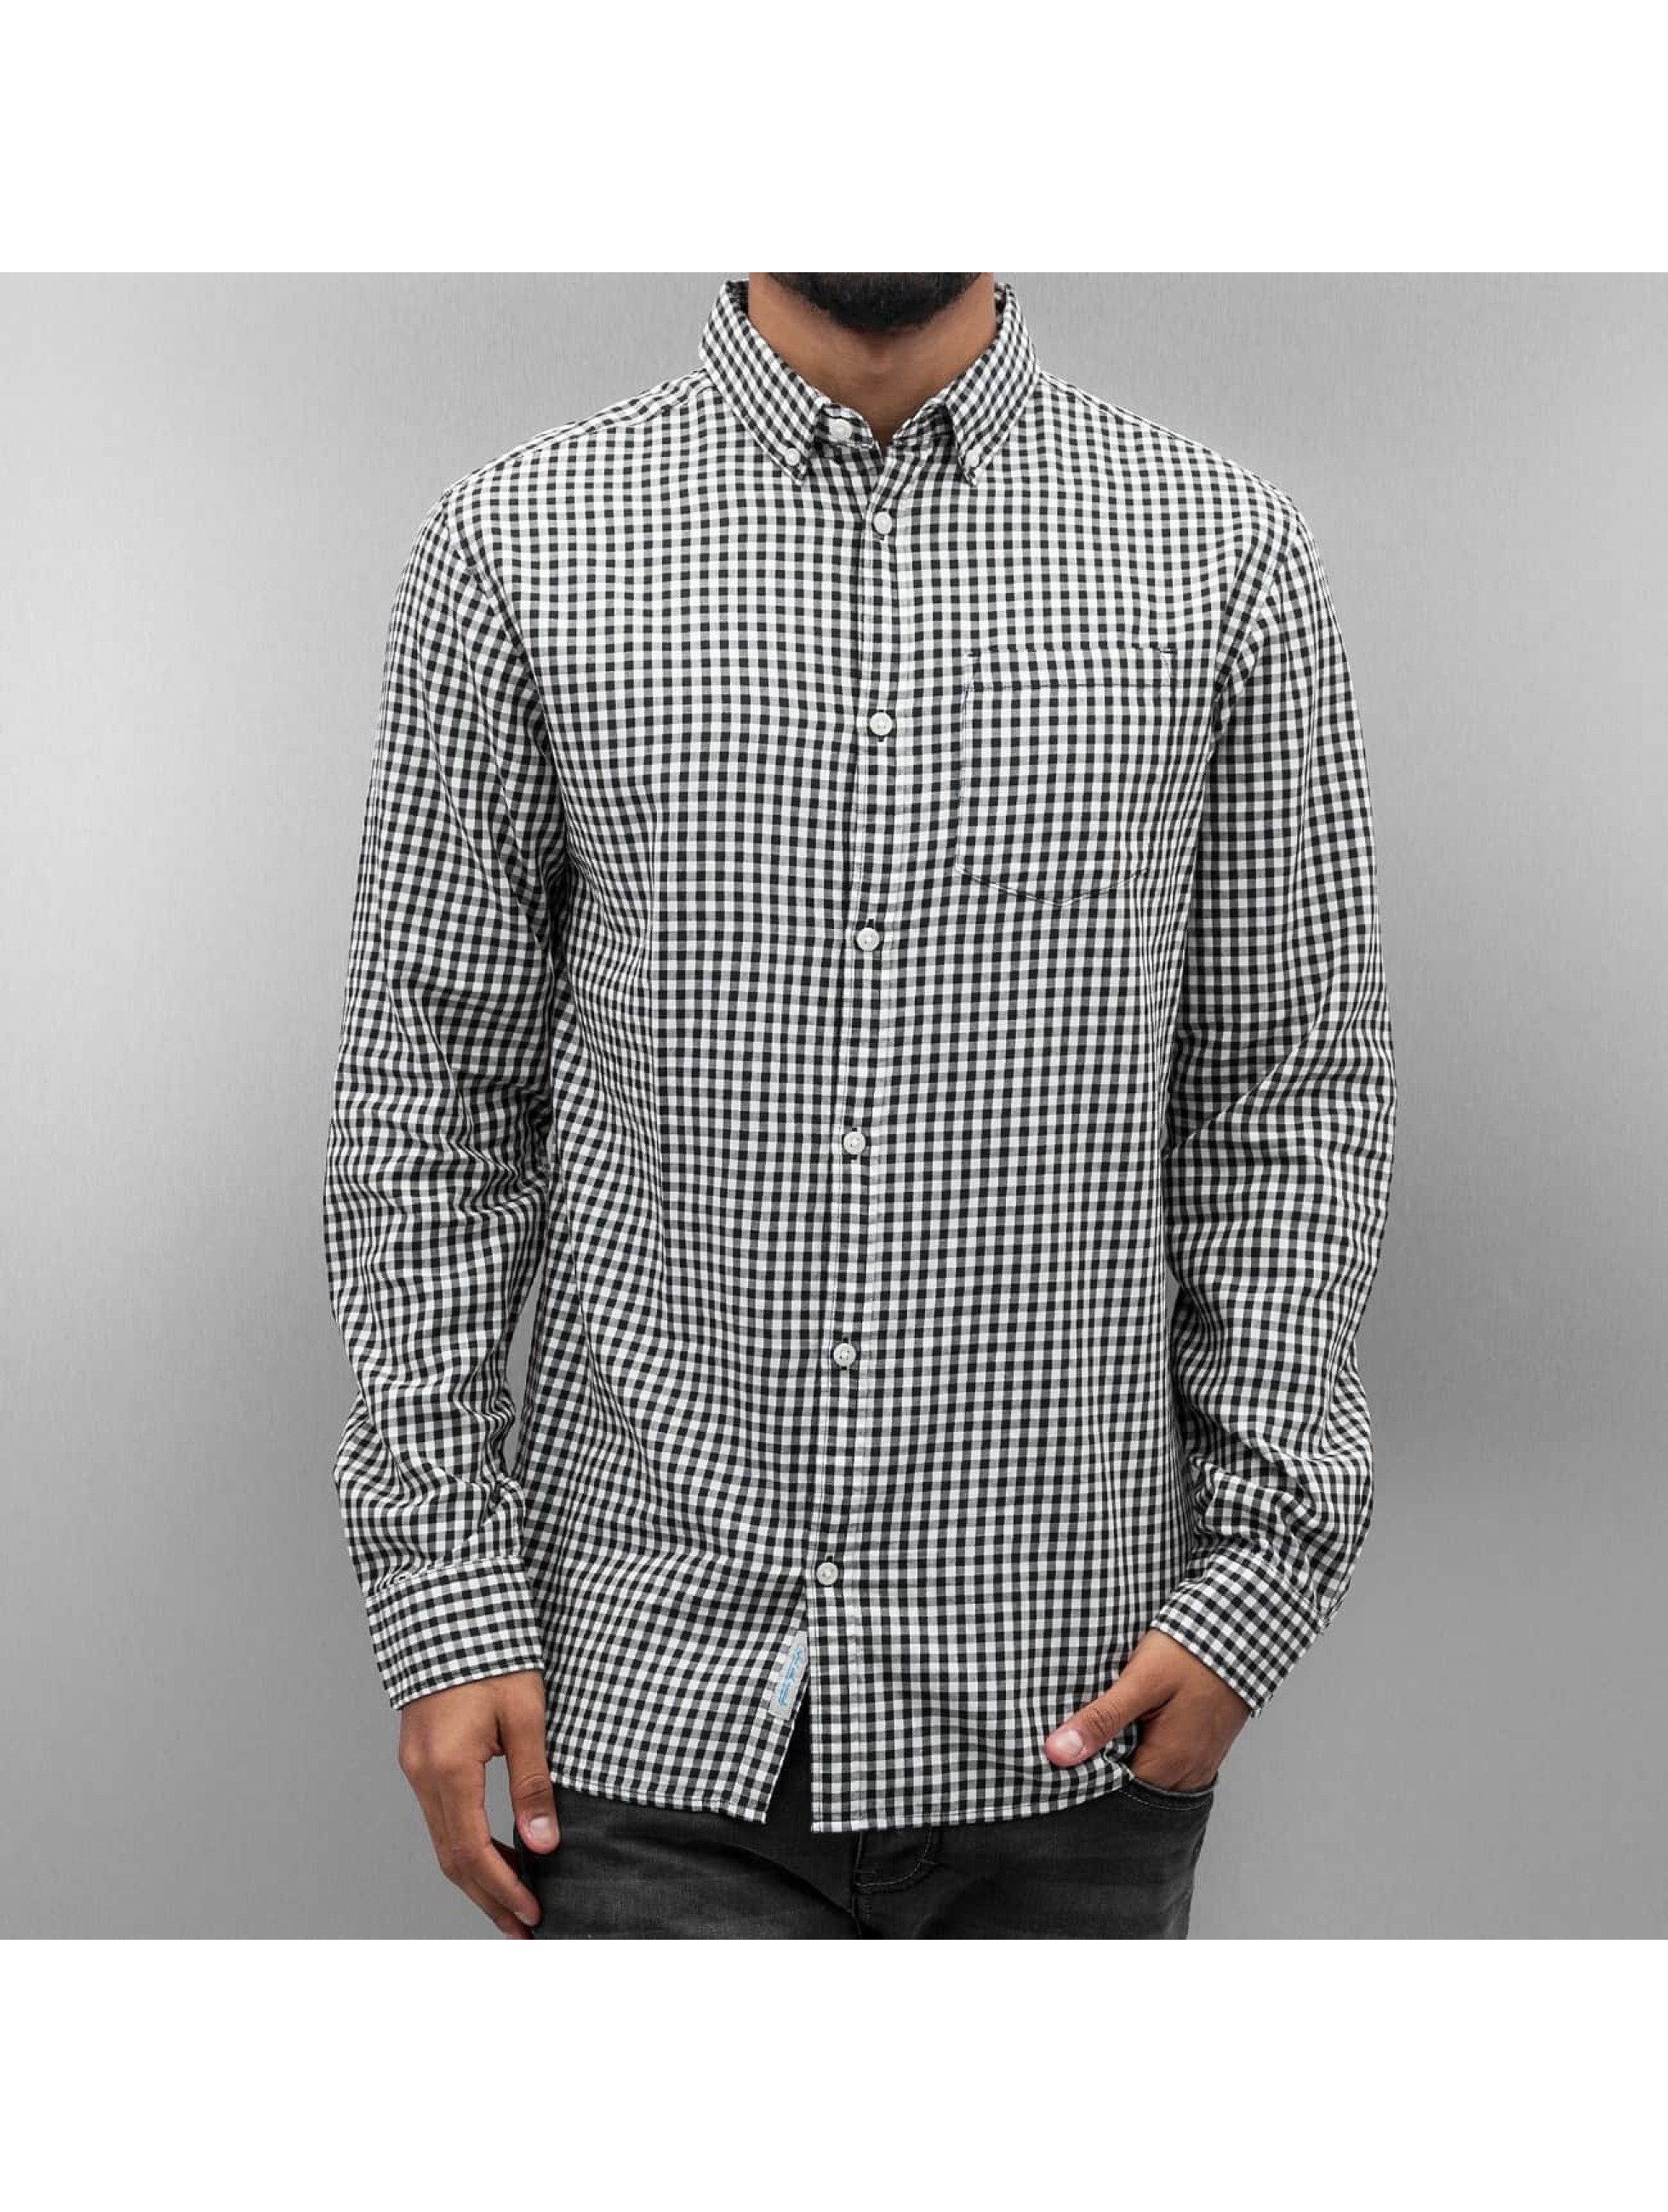 Jack & Jones Shirt jjorJames white